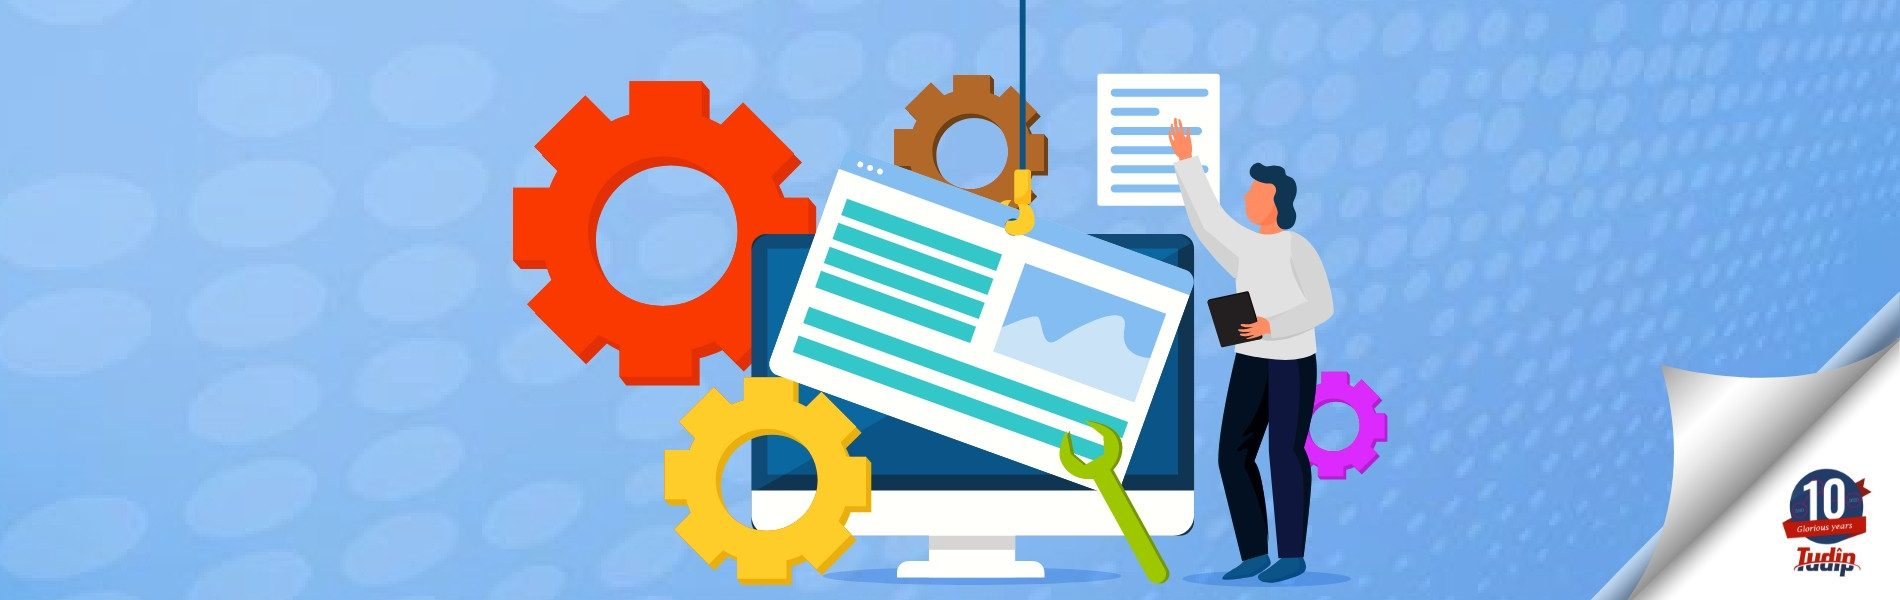 Reusability_hacks_in_test_automation_development: A_multidimensional_view